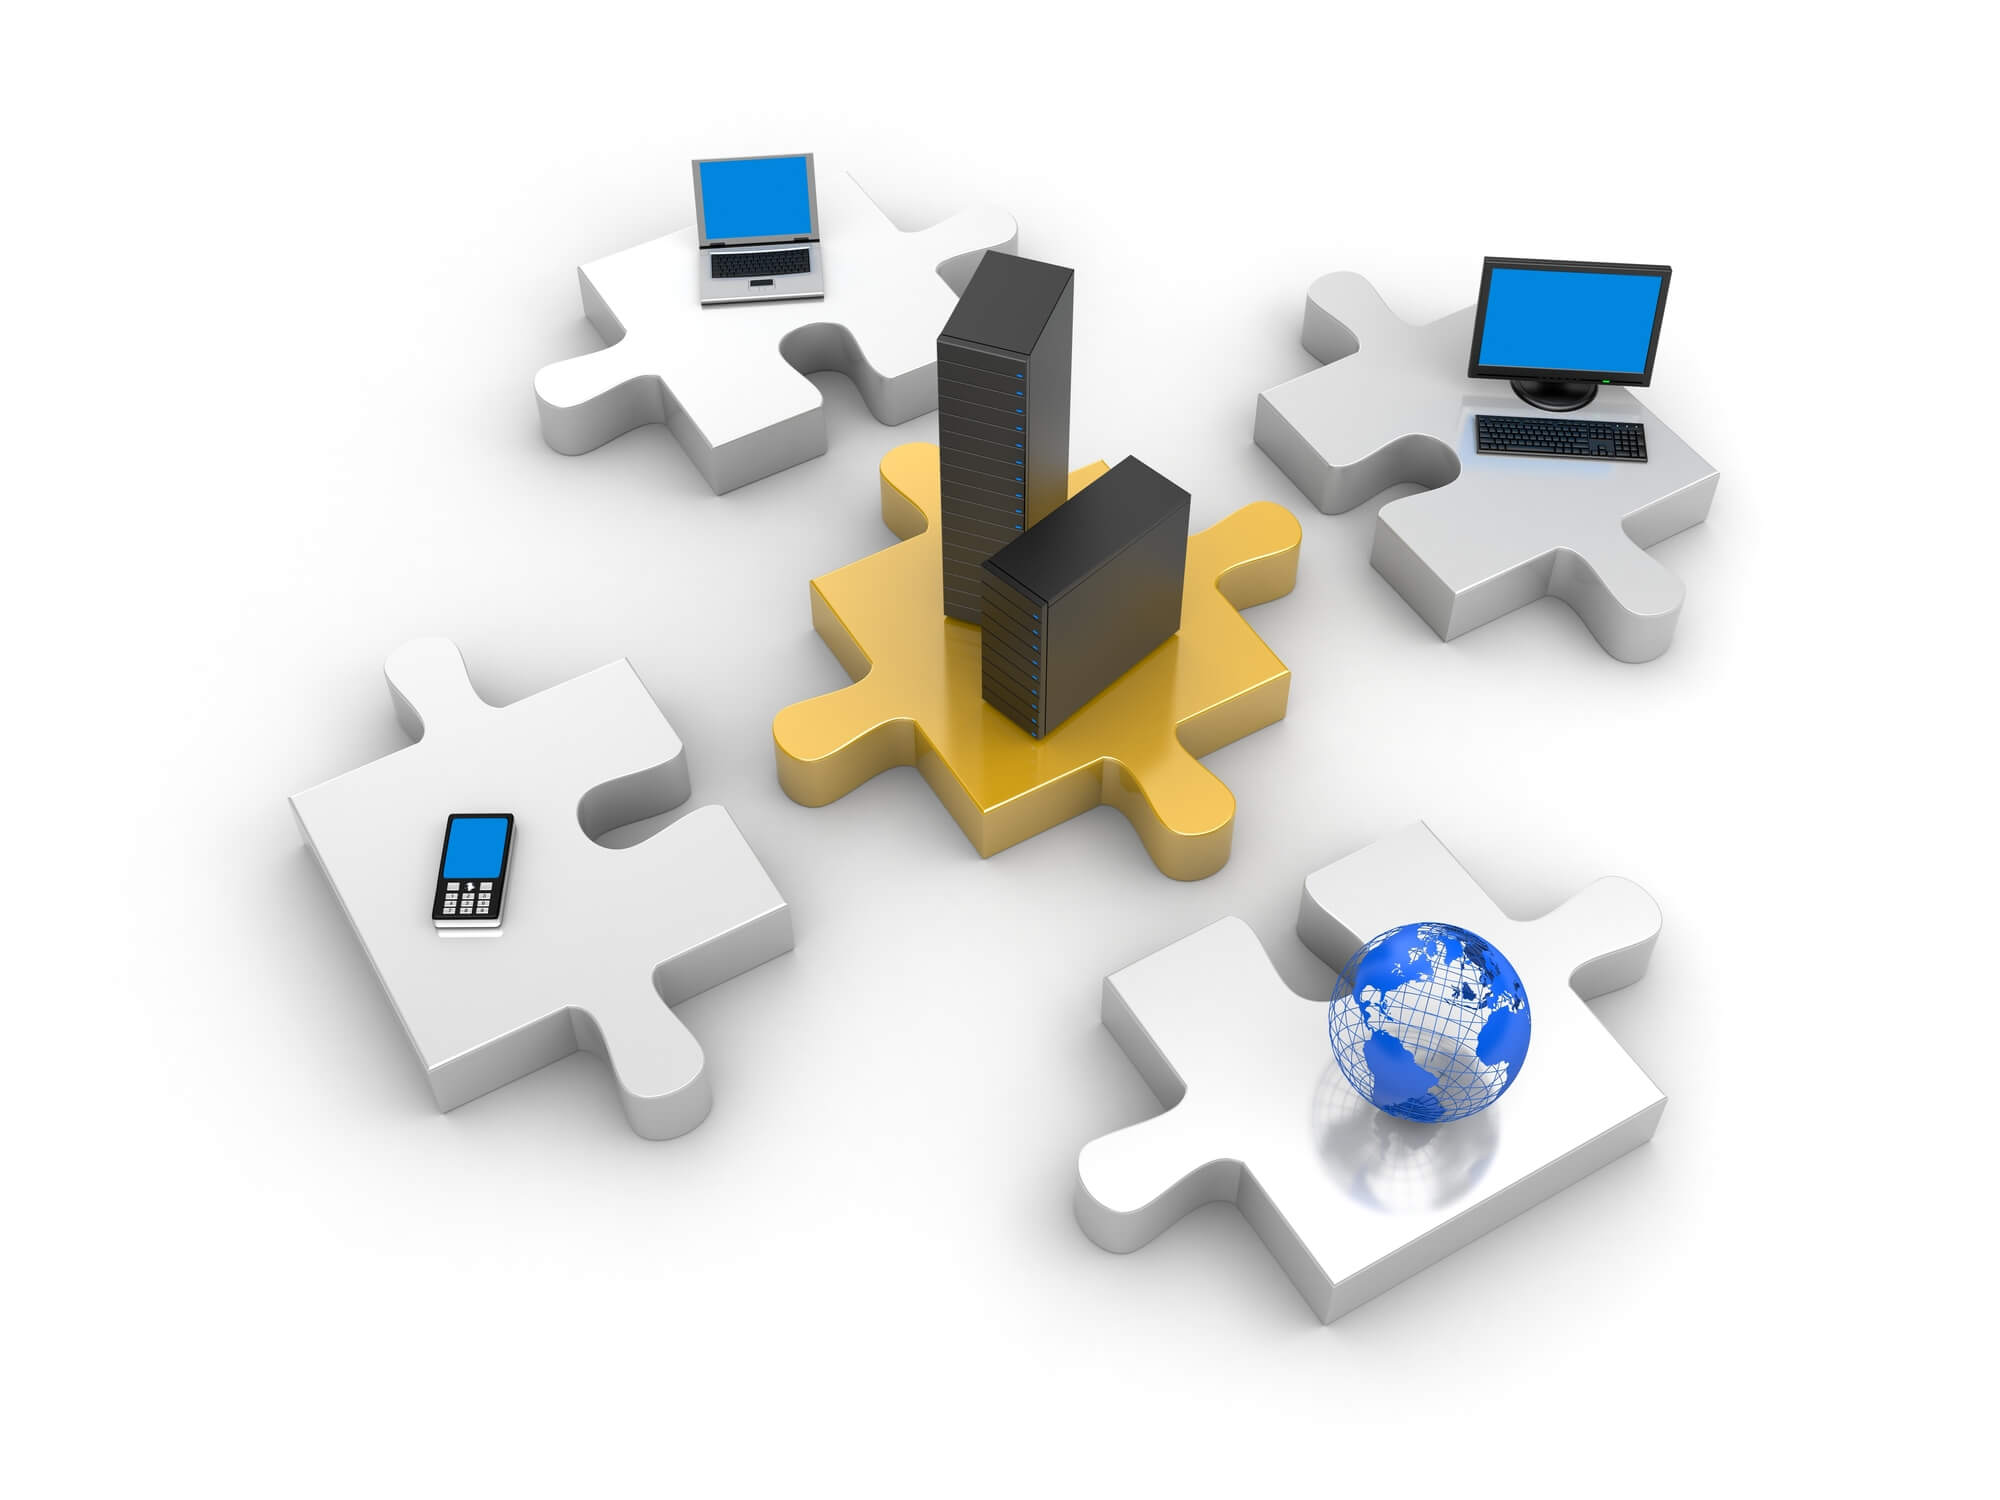 IT infrastructure components as jigsaw puzzle pieces